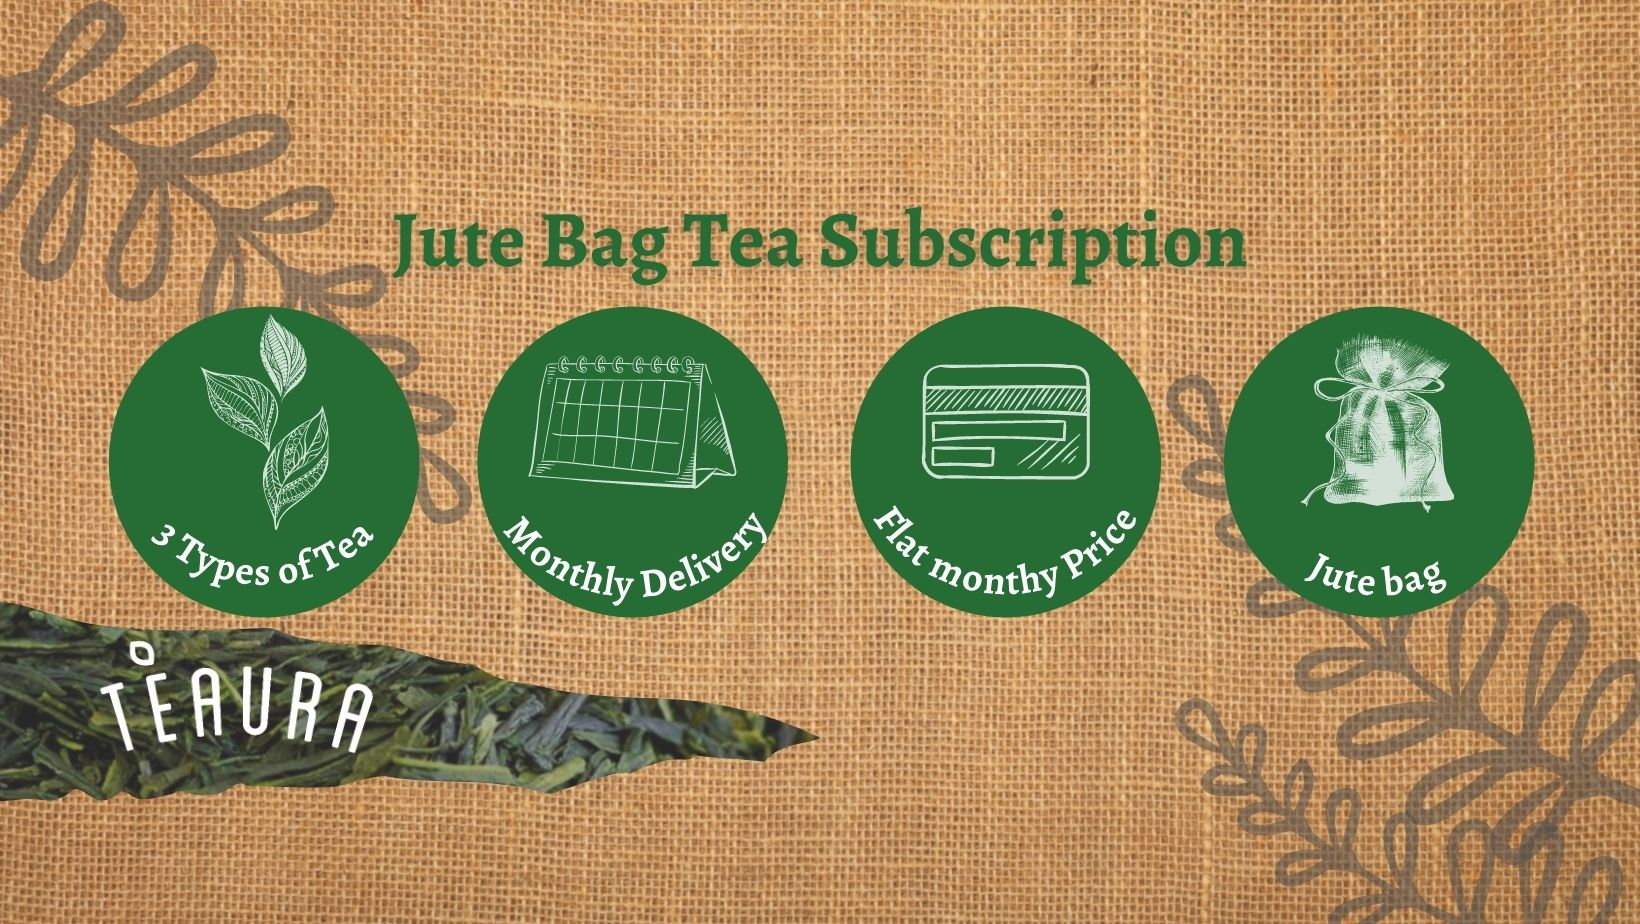 Jute Bag Tea Subscription benefits: 3 types of tea, Monthly delivery, Monthly Flat fee, Jute bag